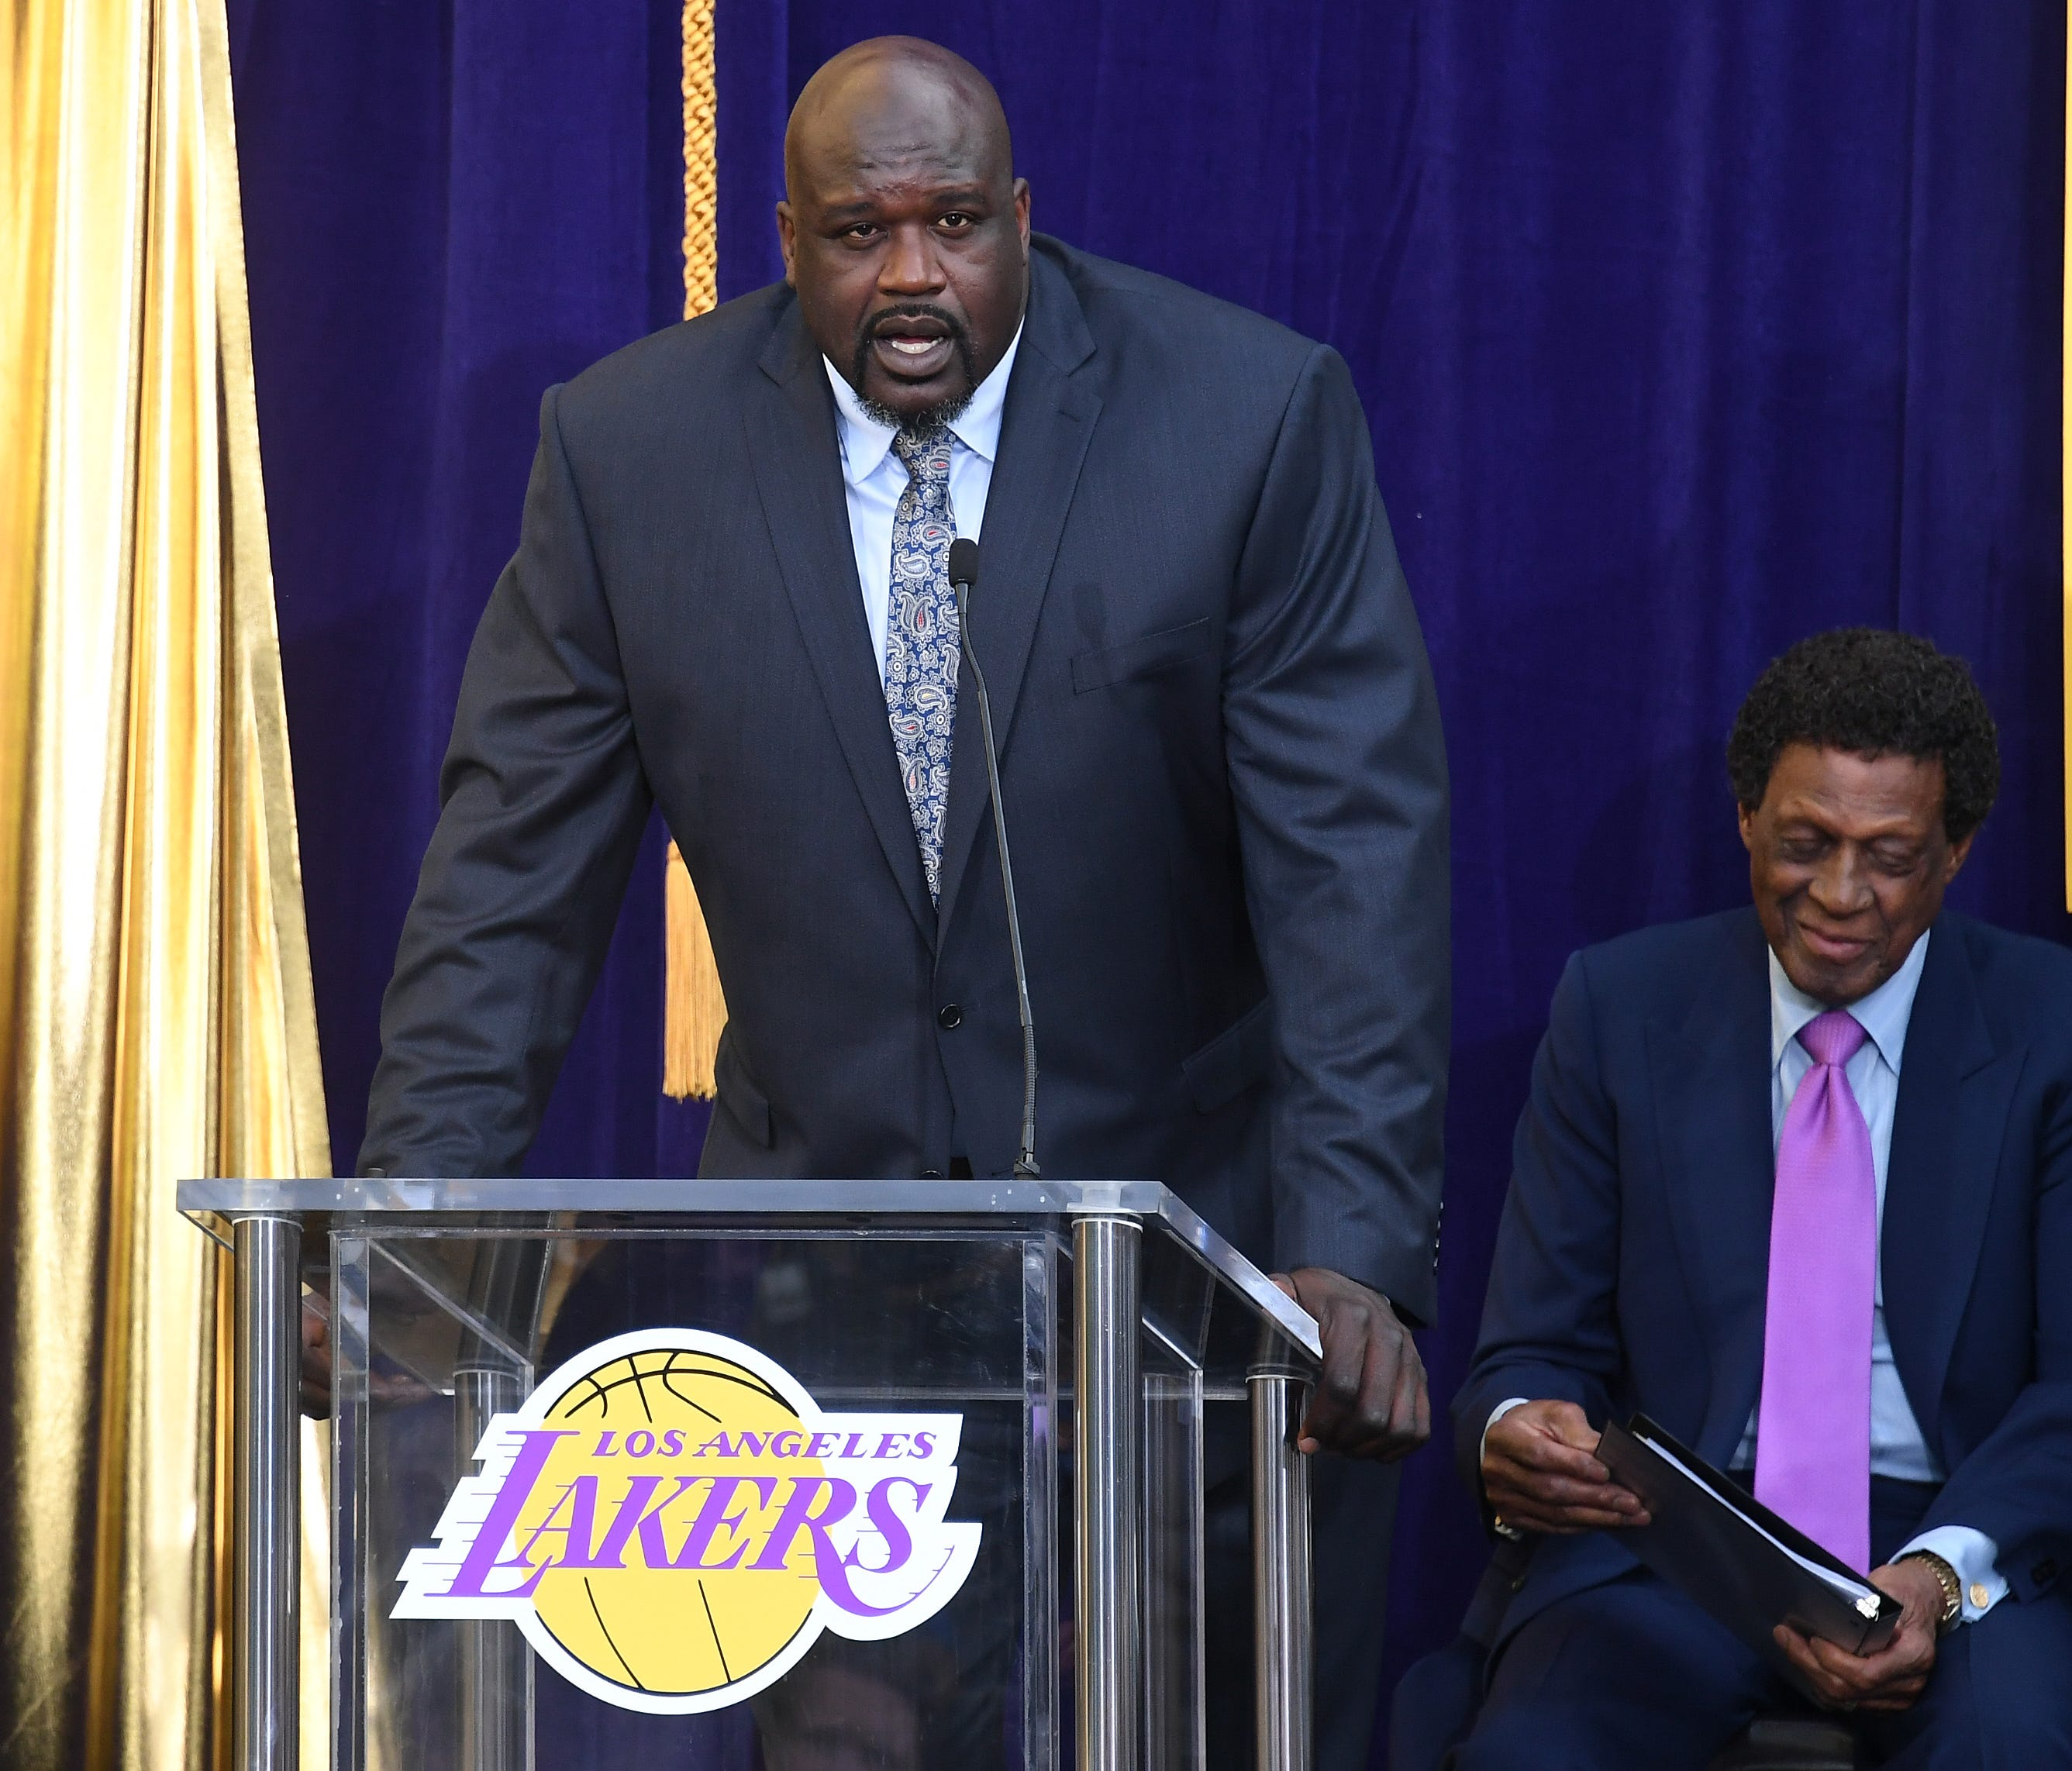 Former Los Angeles Lakers player Shaquille O'Neal (L) speaks during a statue unveiling for former player Elgin Baylor (R) prior to the game between the Los Angeles Lakers and the Minnesota Timberwolves at Staples Center.